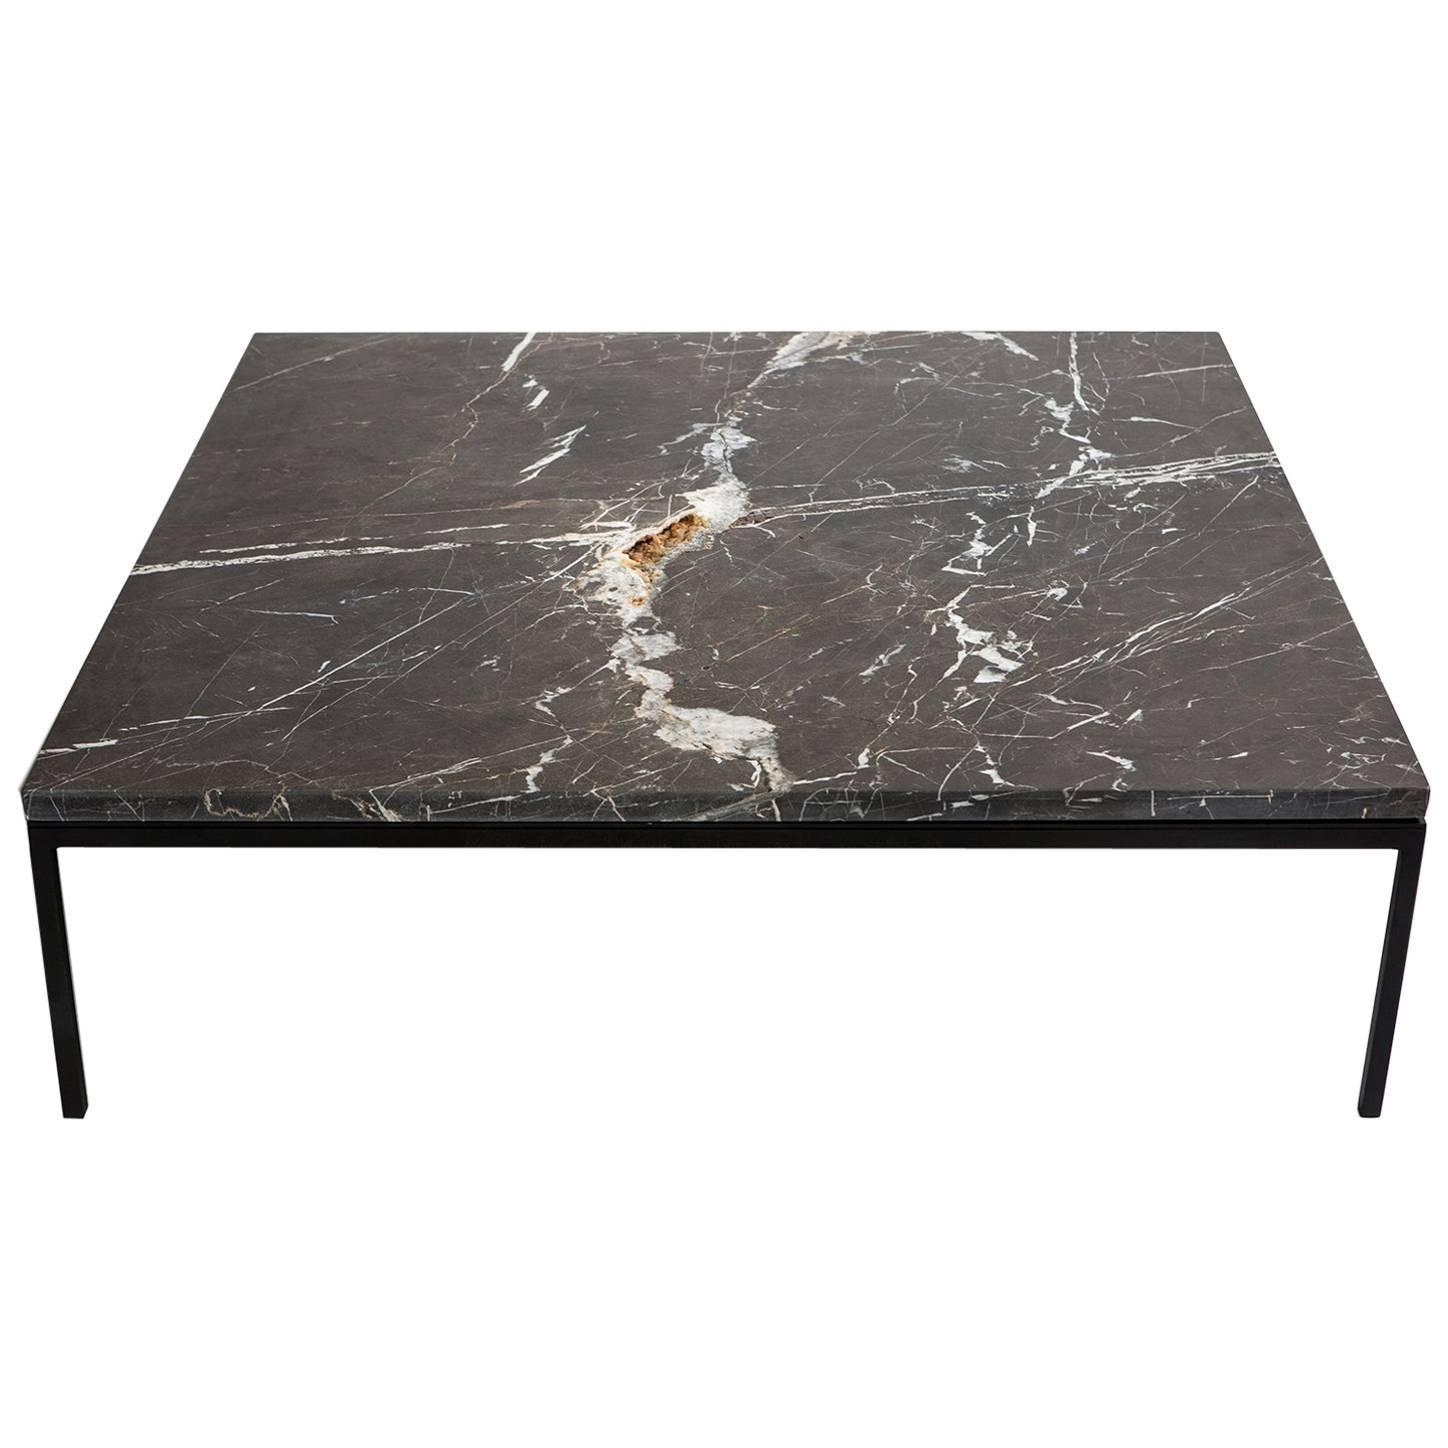 FOUND Coffee Table in Black Marble and Black Steel For Sale at 1stdibs